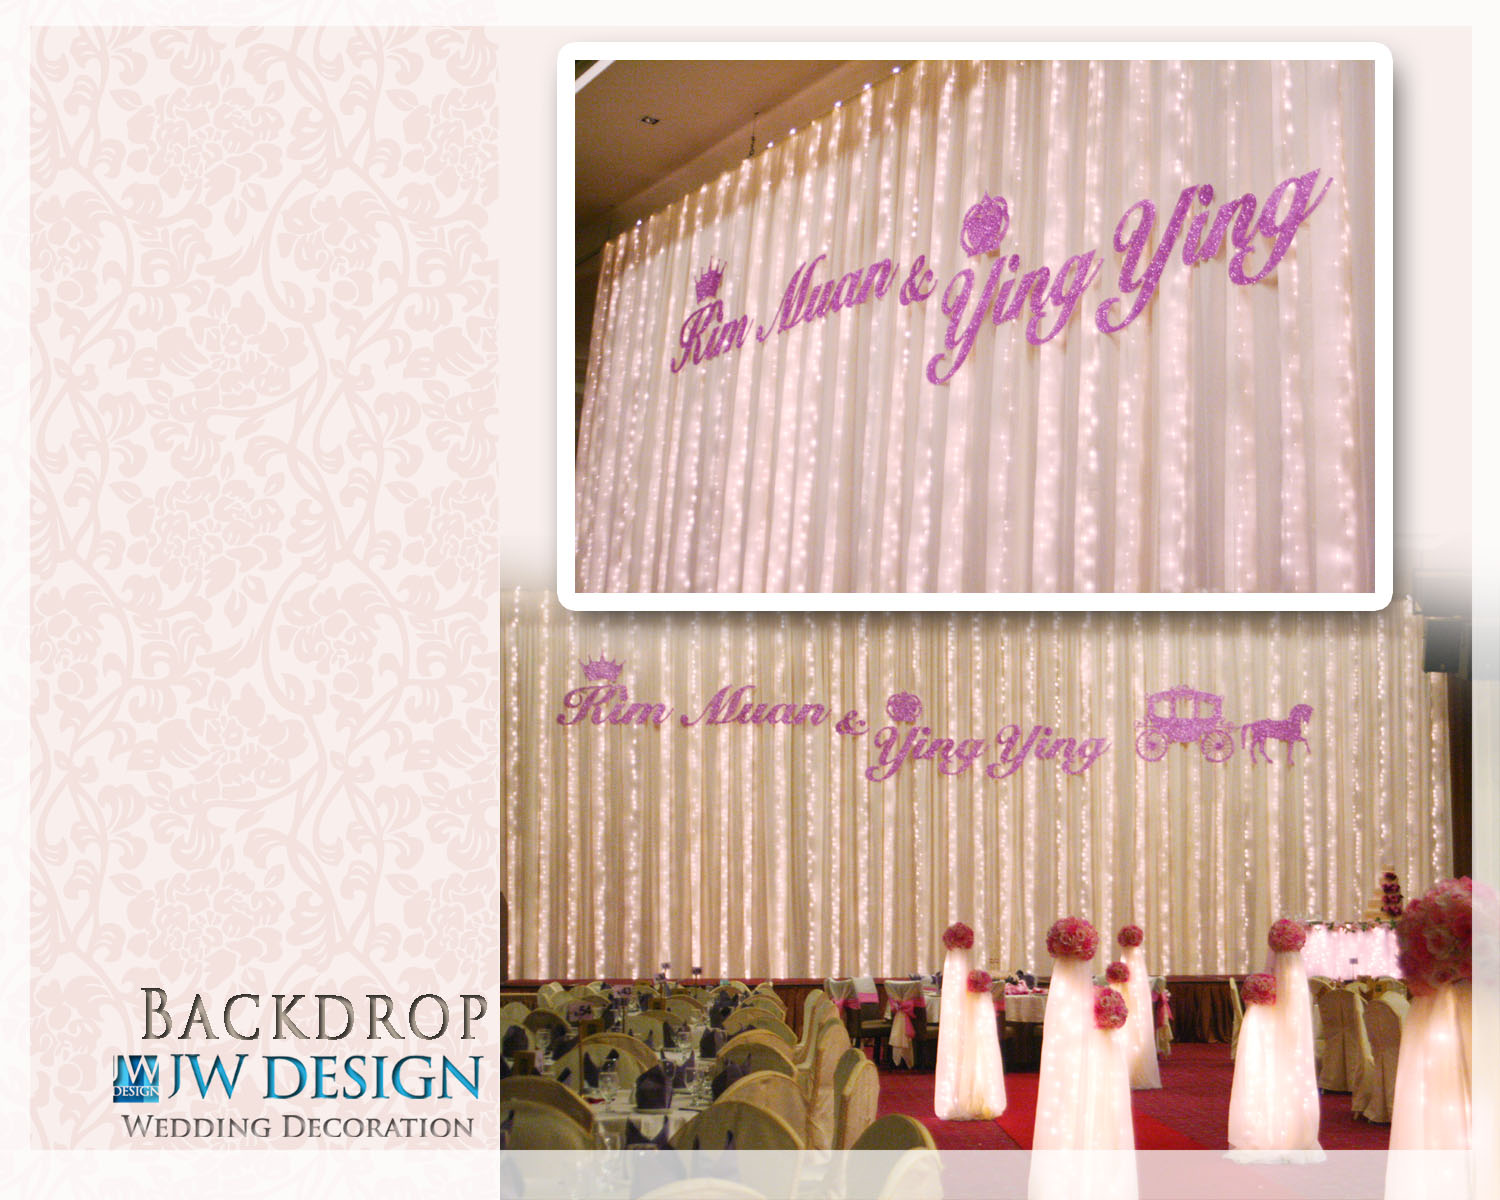 Jw design wedding decoration october 2011 kim muan ying yings wedding klang centro imperial ballroom junglespirit Gallery